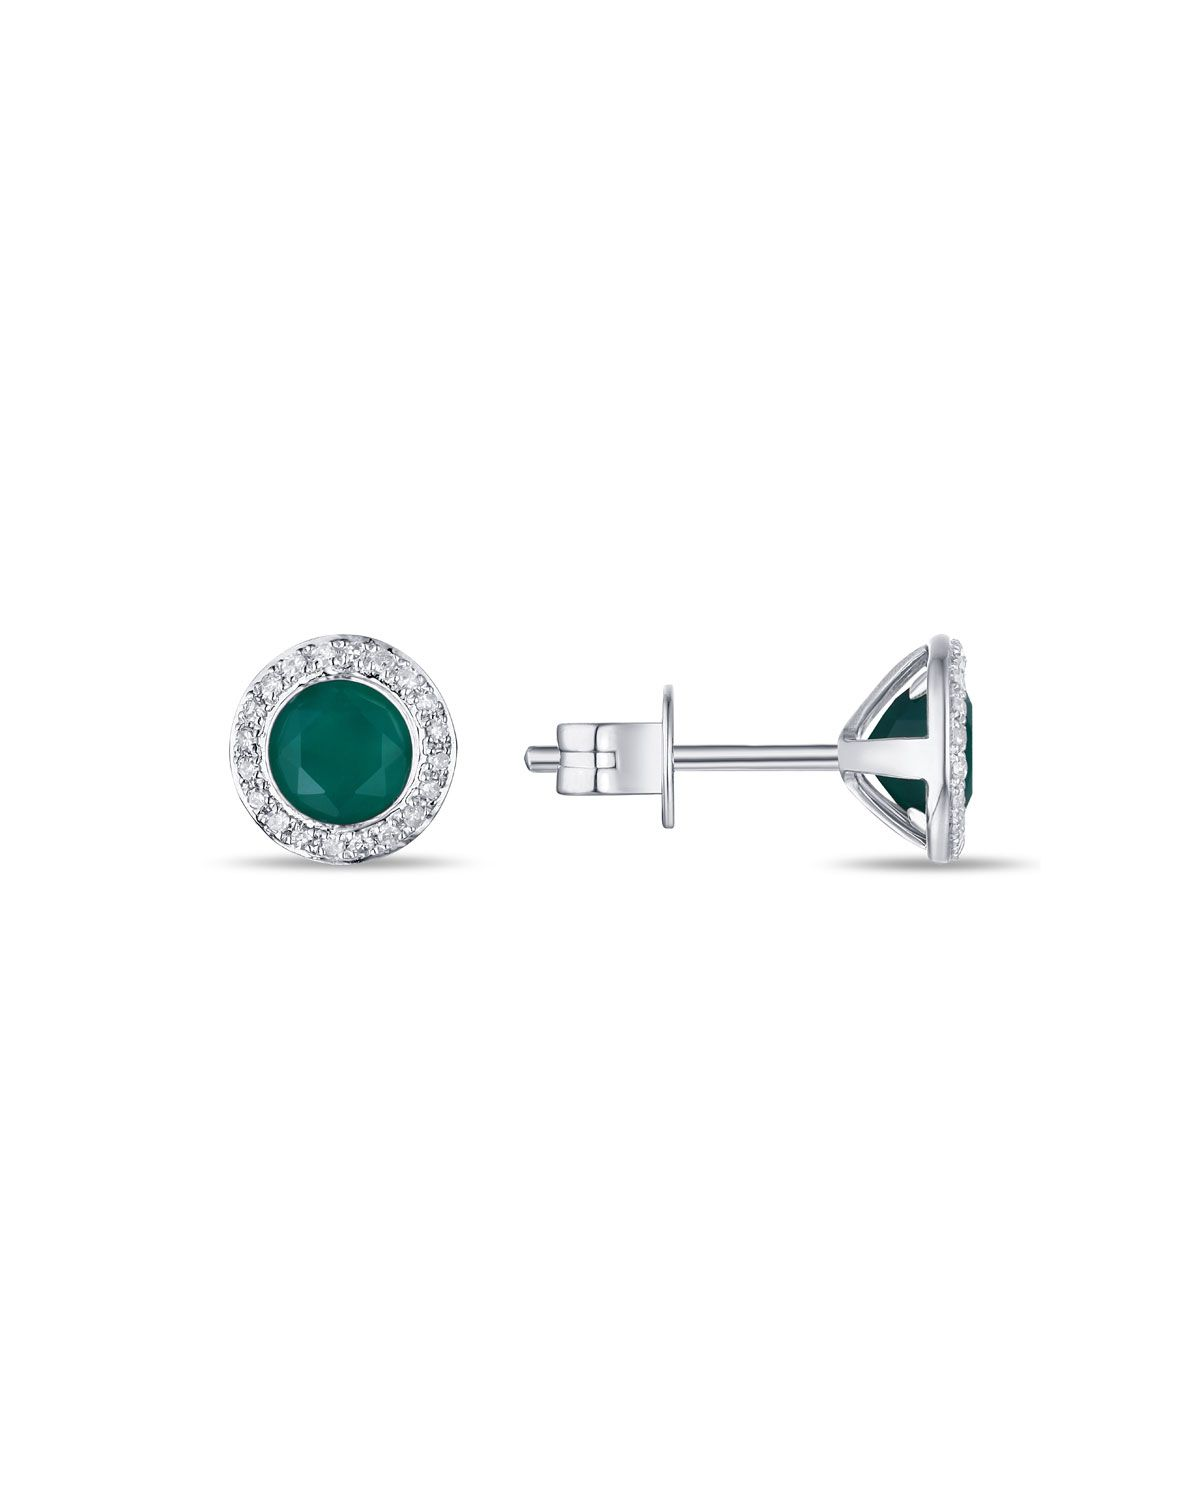 Diana M. Jewels 14k White Gold Round Green Agate & Diamond Stud Earrings